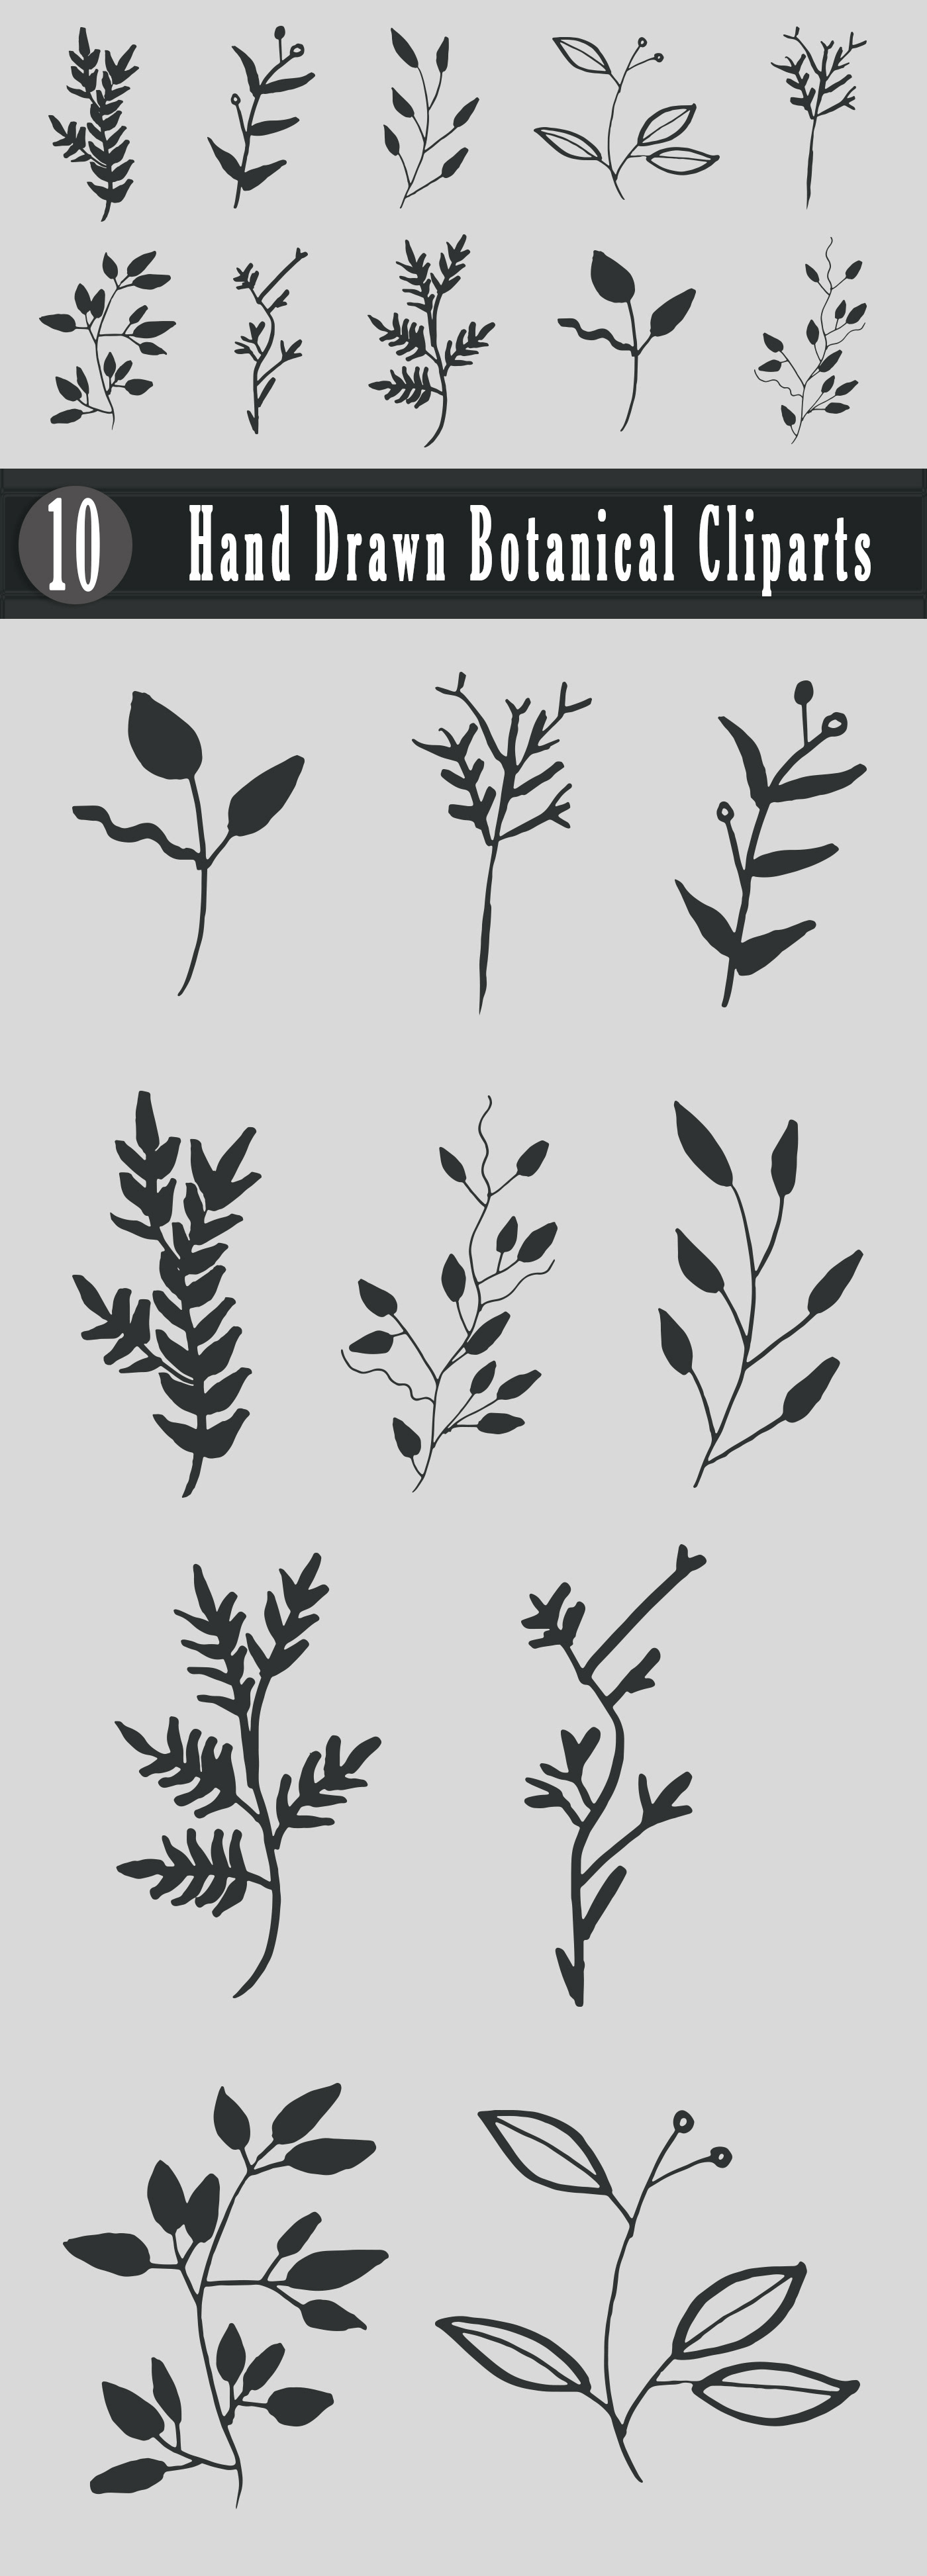 Free Handmade Botanical Cliparts is a creative and lovely pack of handmade leaves for your projects.